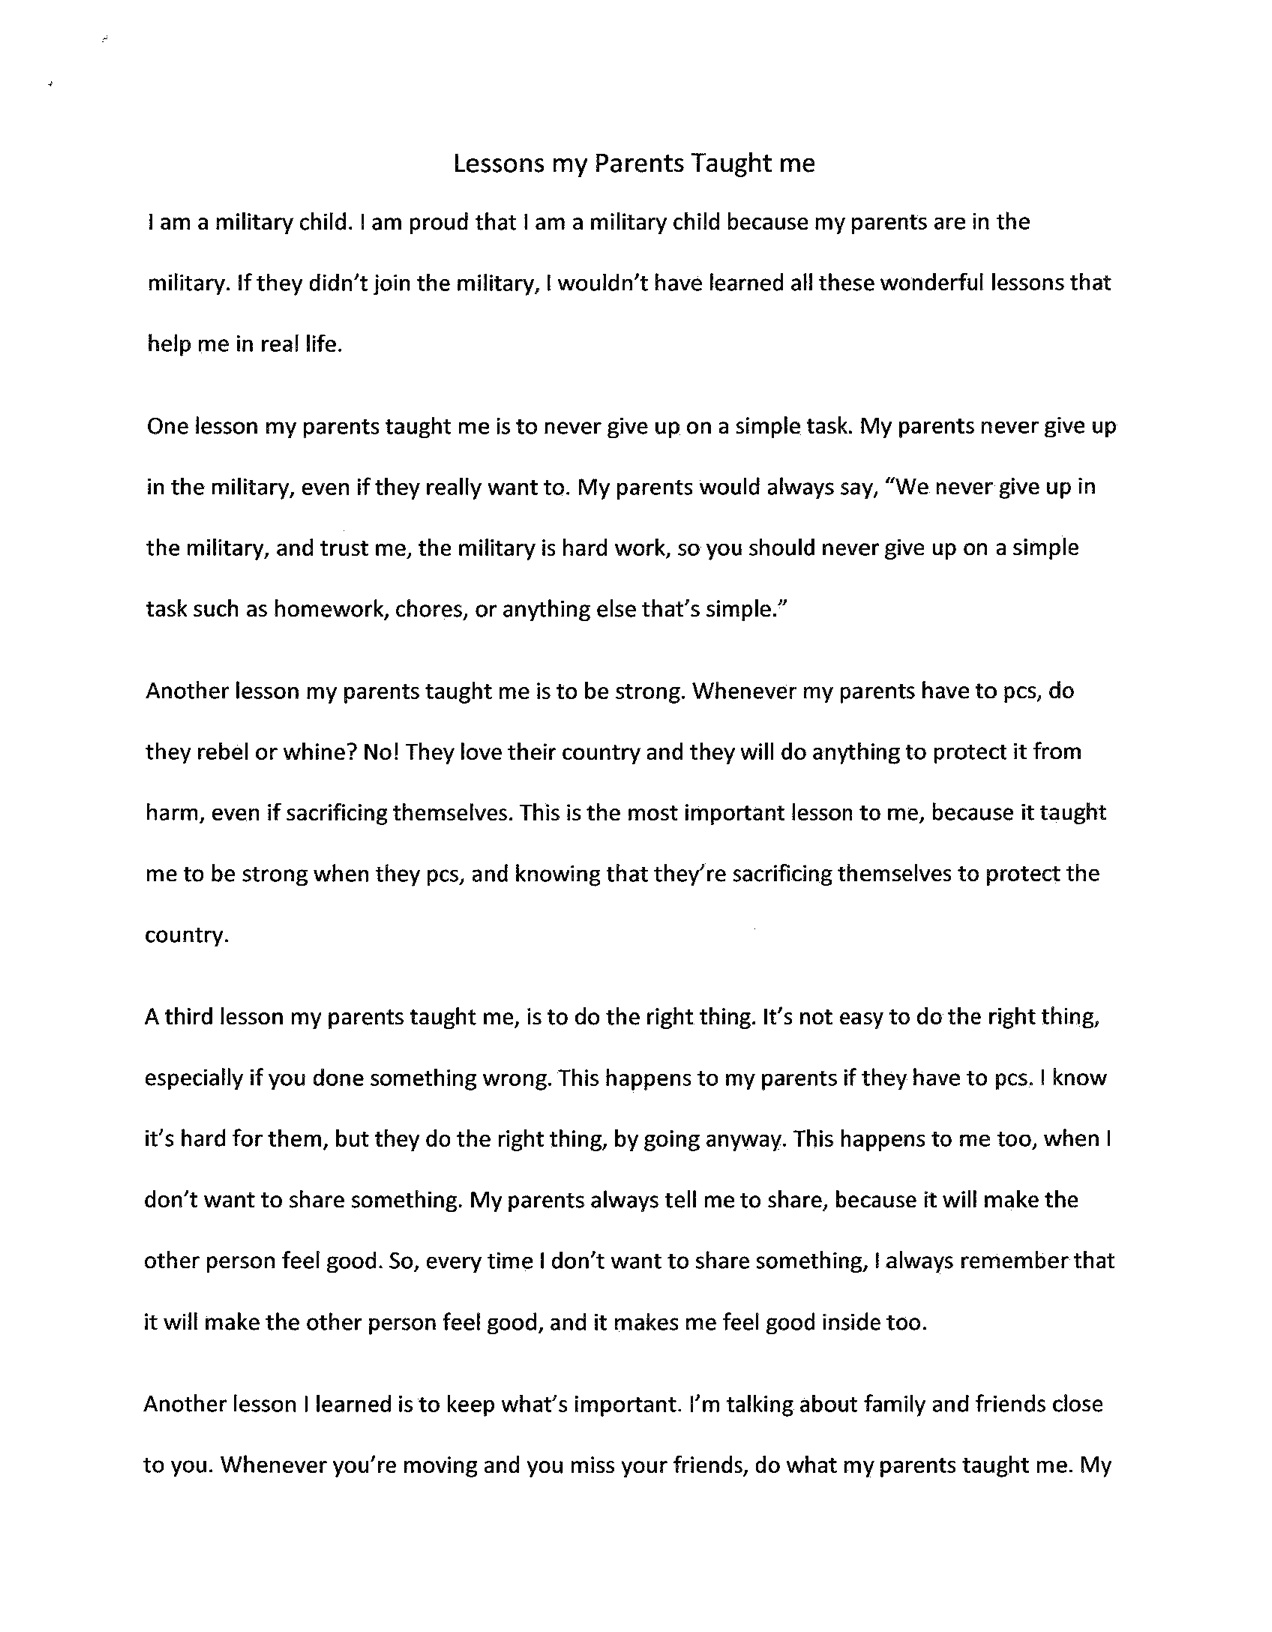 narrative essay about a lesson learned Many narrative essay assignments ask students to write the story of an experience where they learned a valuable lesson the thesis sentence for these types of narratives should include the lesson or moral of the story.